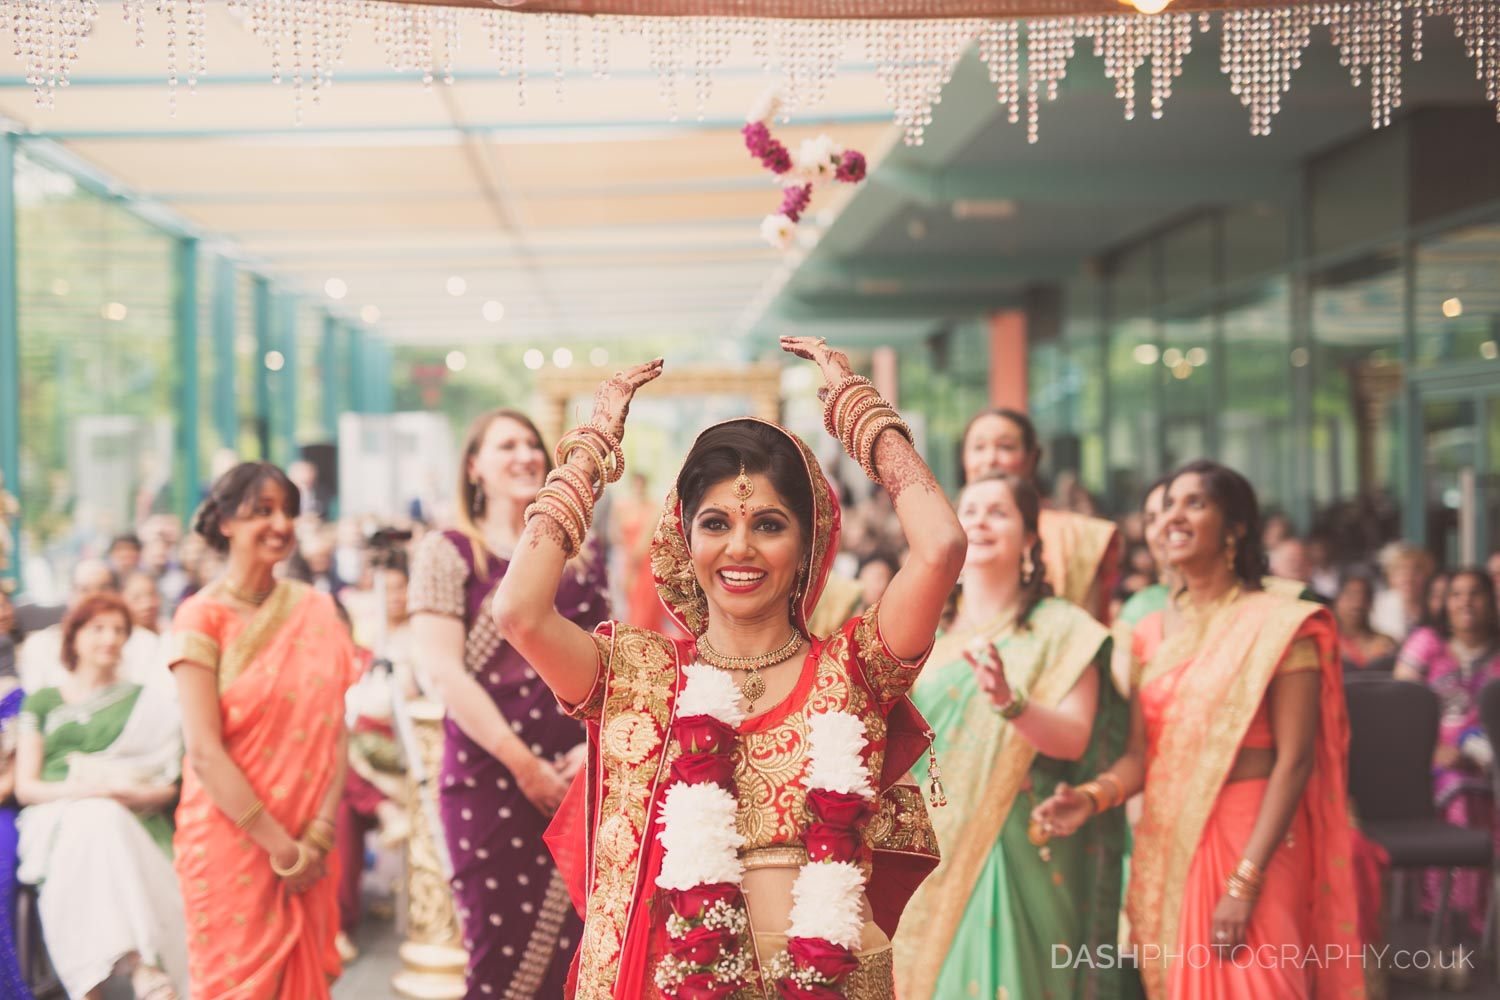 Asian wedding, registry and reception captured by Dash Photography in 2017 in London using Canon cameras and Sigma lenses